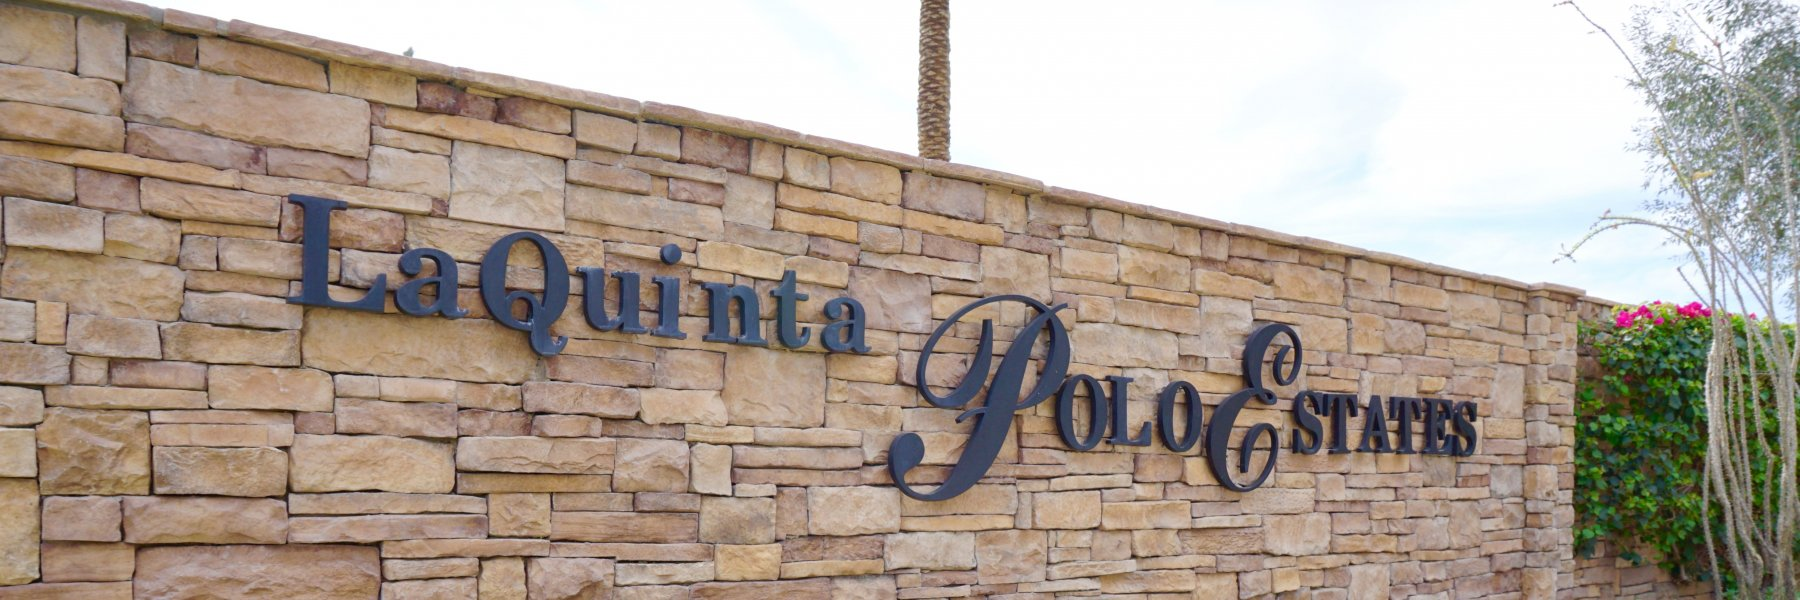 La Quinta Polo Estates is a community of homes in La Quinta California